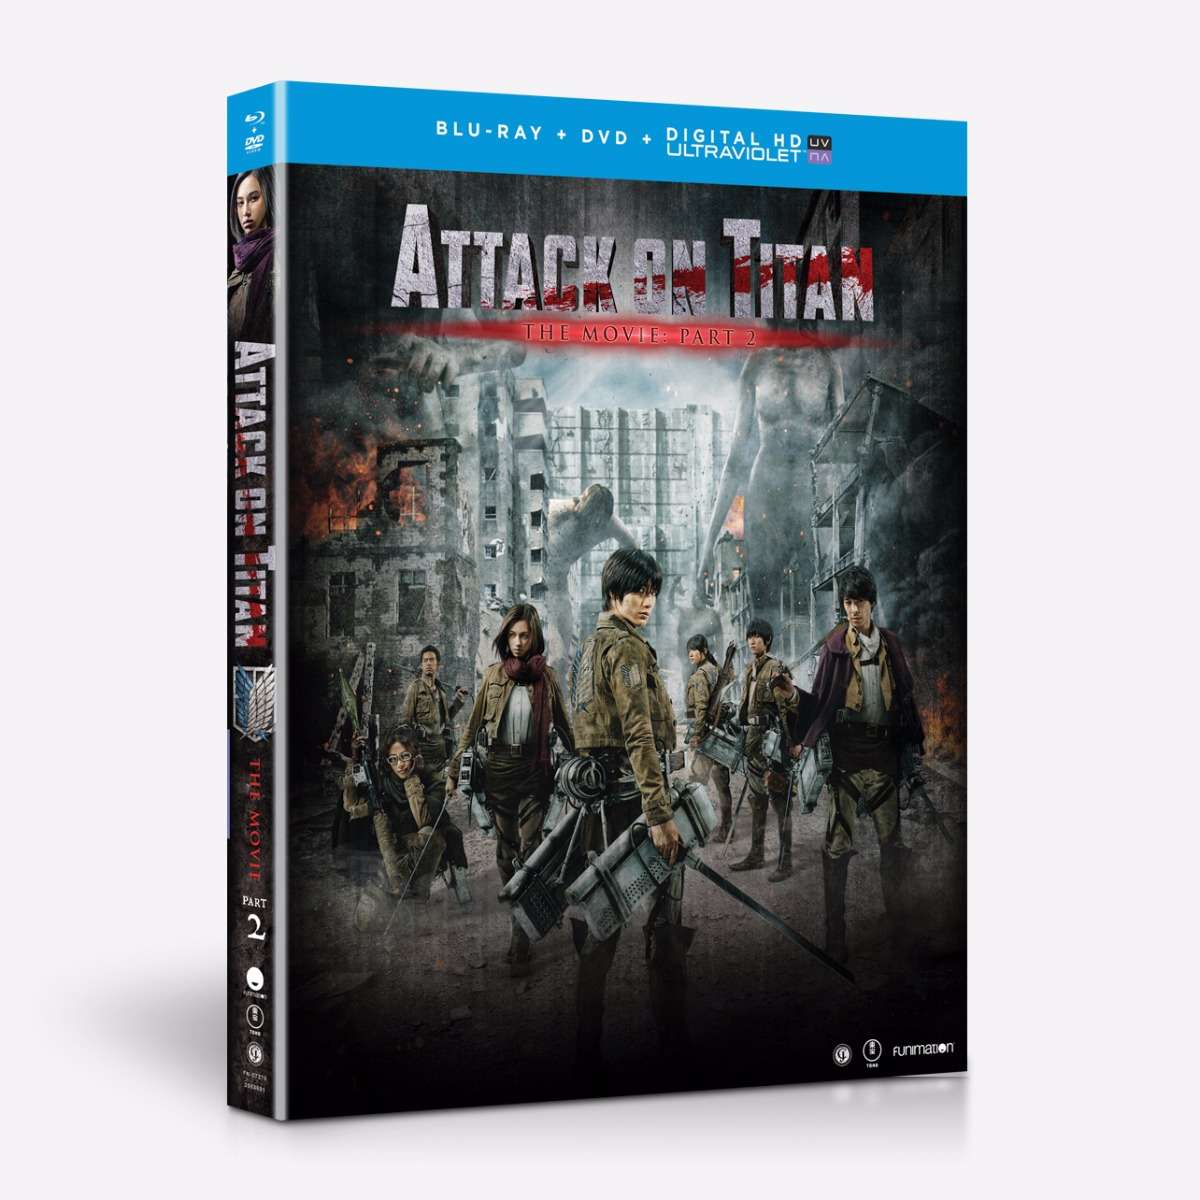 Live Action Movie - Part 2 - BD/DVD Combo + UV home-video